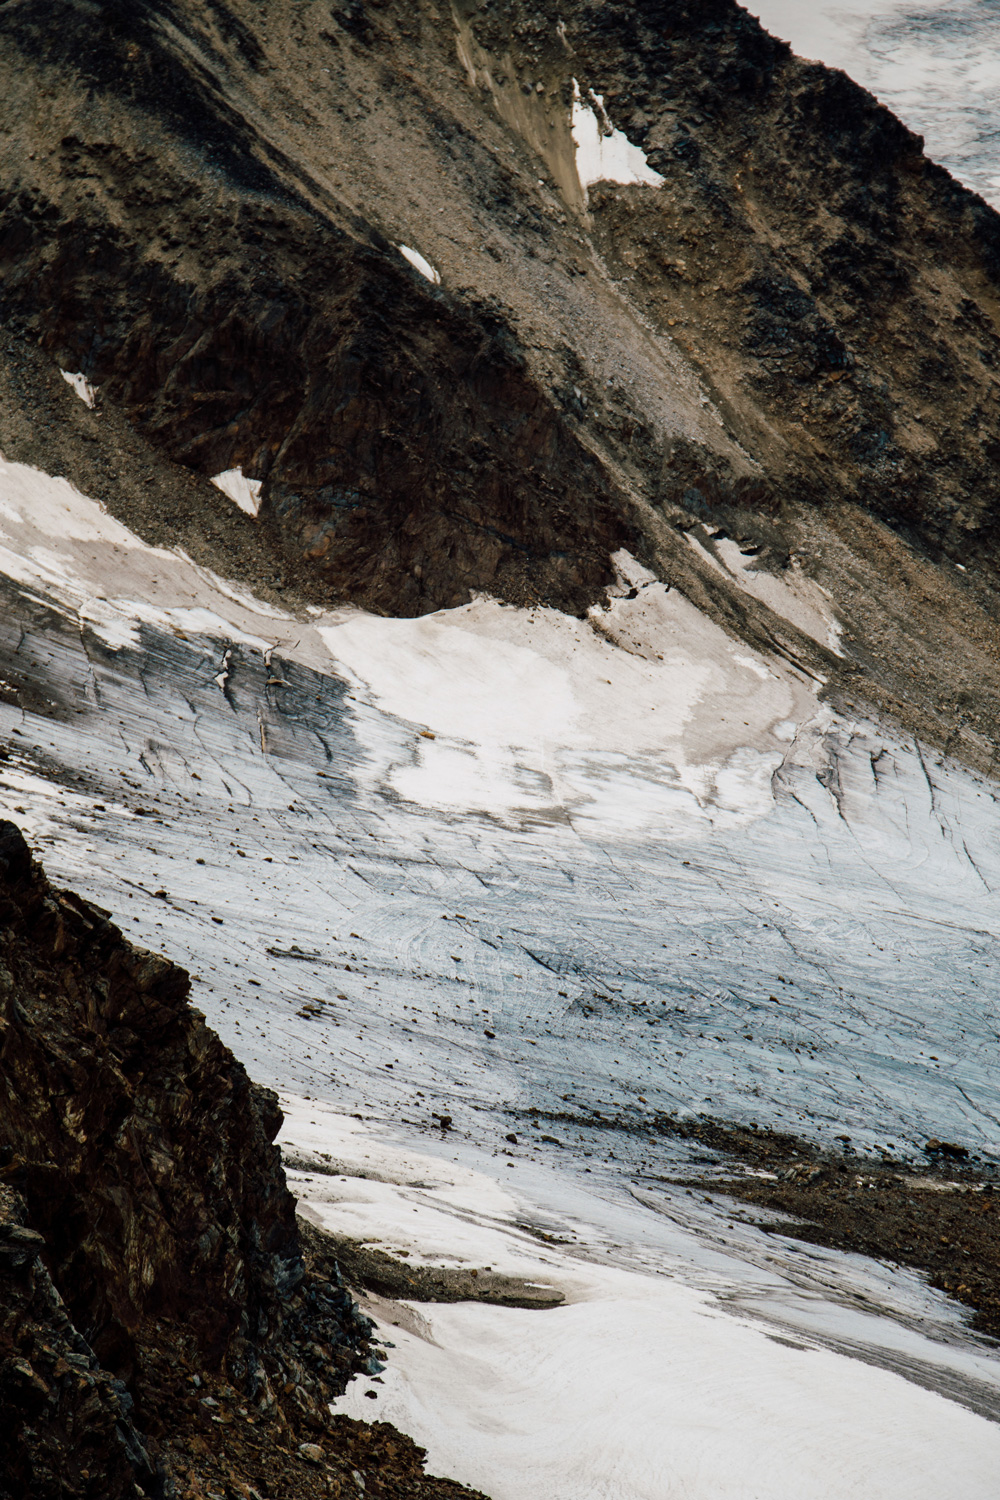 hiking Solden's glaciers